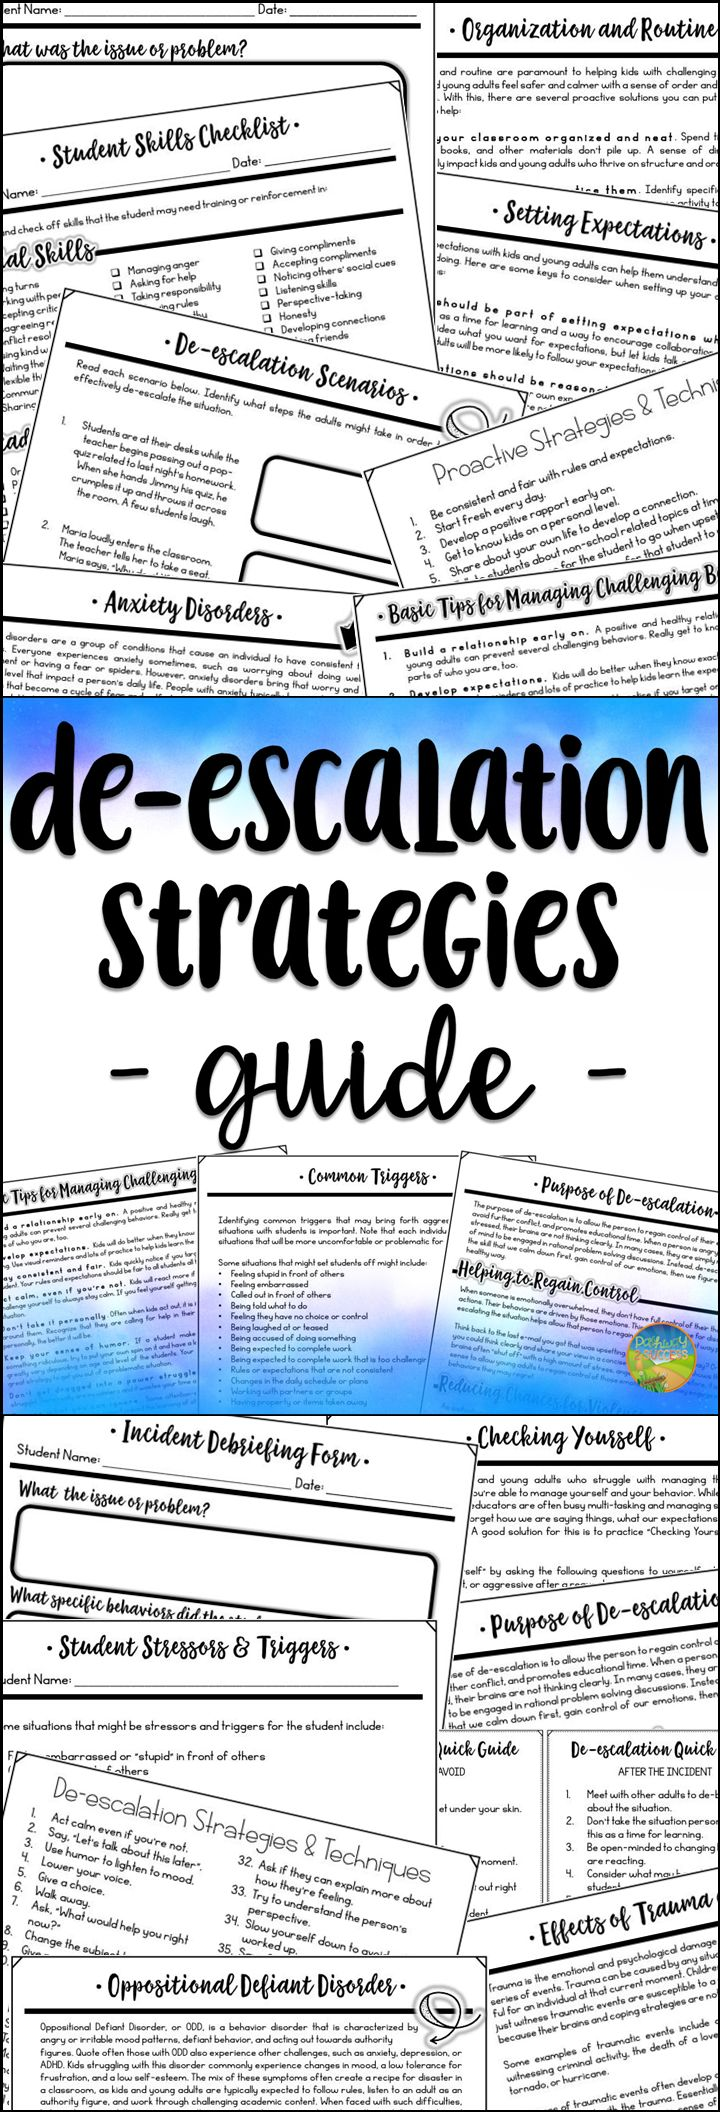 De-escalation Strategies Guide for teachers and counselors working with kids with challenging behaviors. This is ideal to defuse situations with kids and young adults with oppositional defiant disorder, ADHD, anxiety, and more.